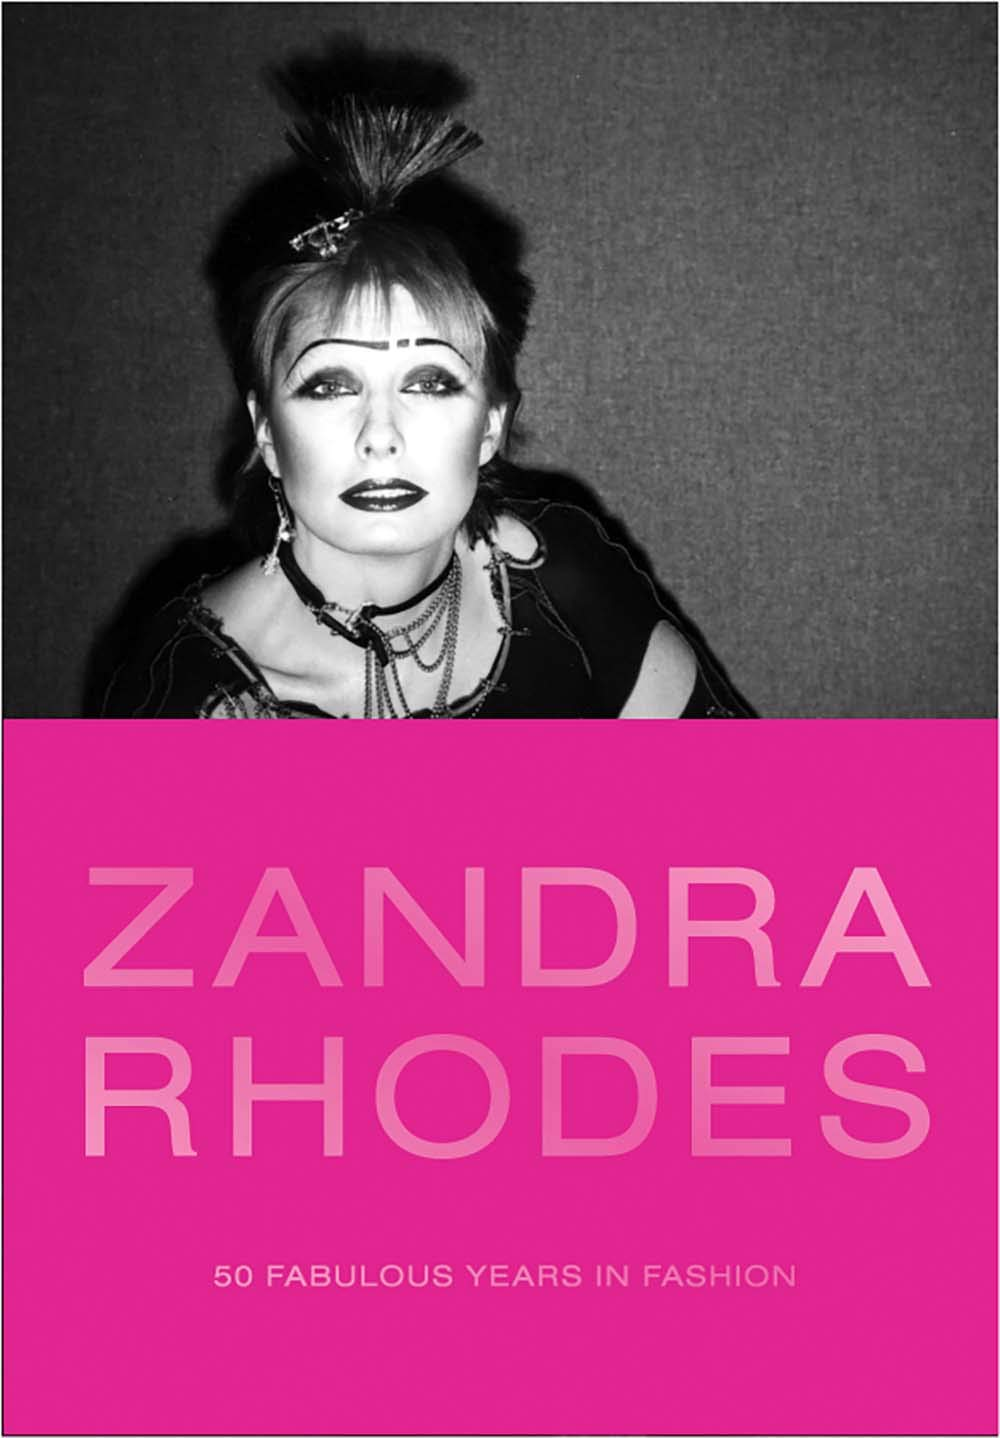 Zandra Rhodes: 50 Fabulous Years in Fashion